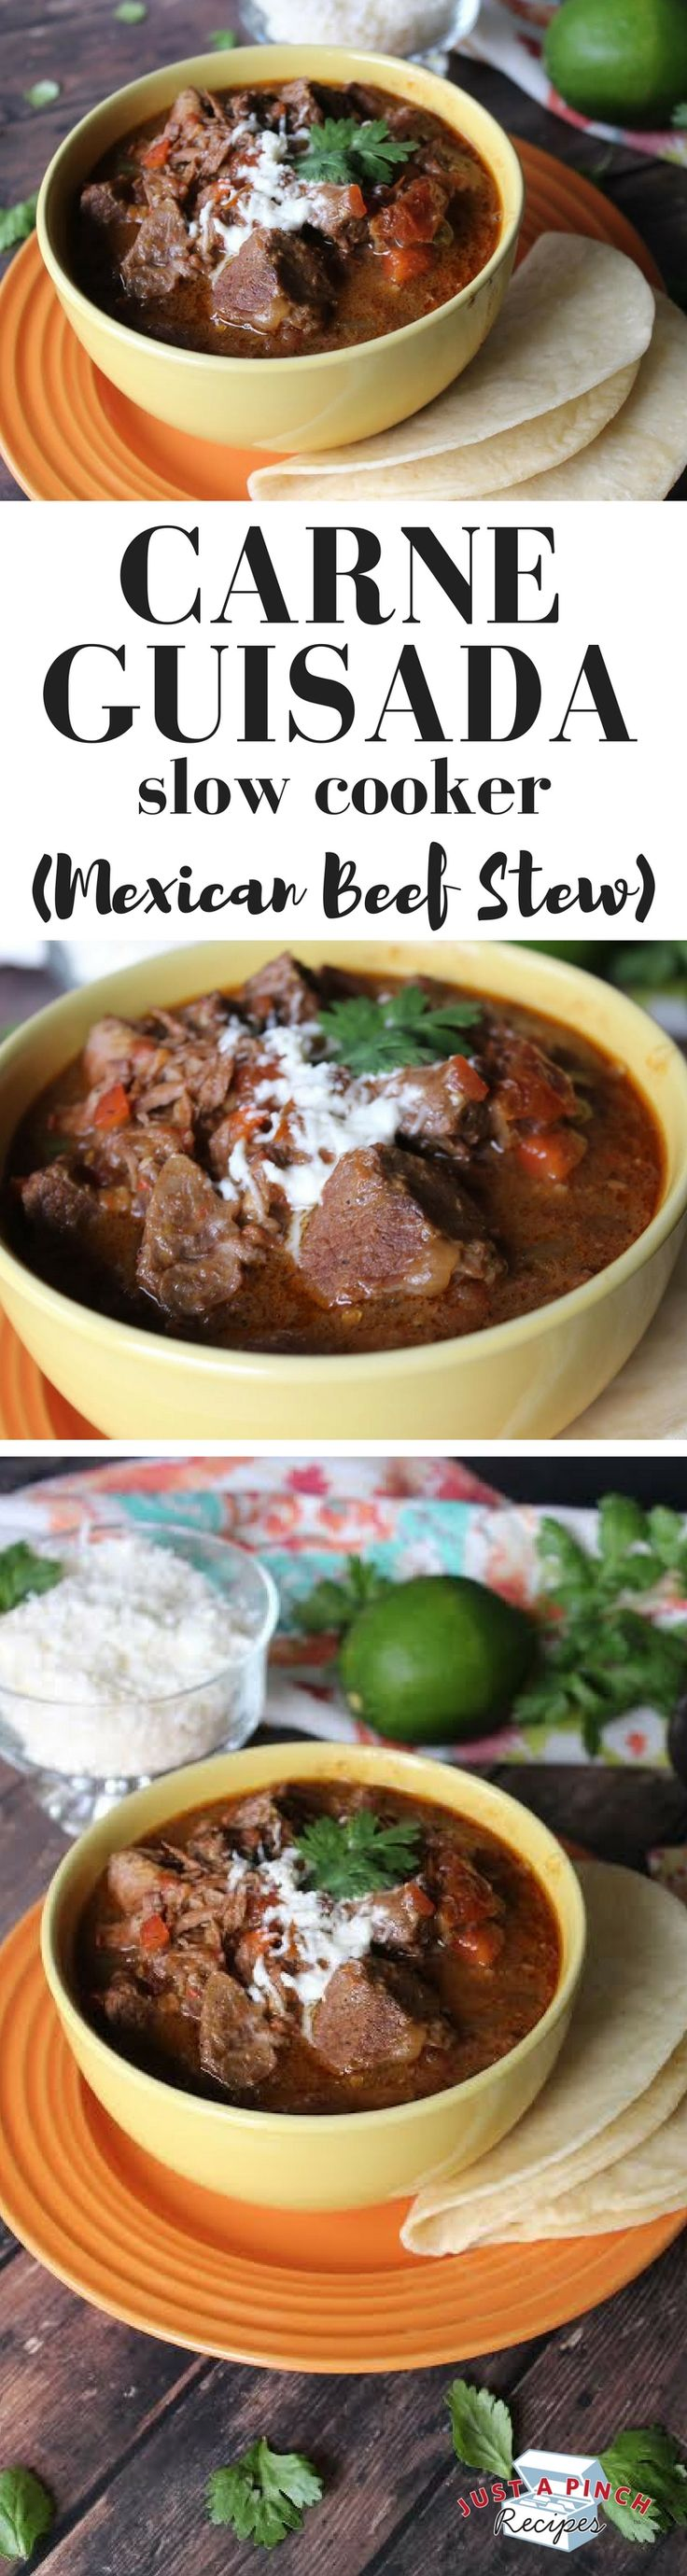 This recipe is so easy! Typically this Mexican stew is labor intensive and requires babysitting. Not this recipe, the slow cooker does all the hard work.